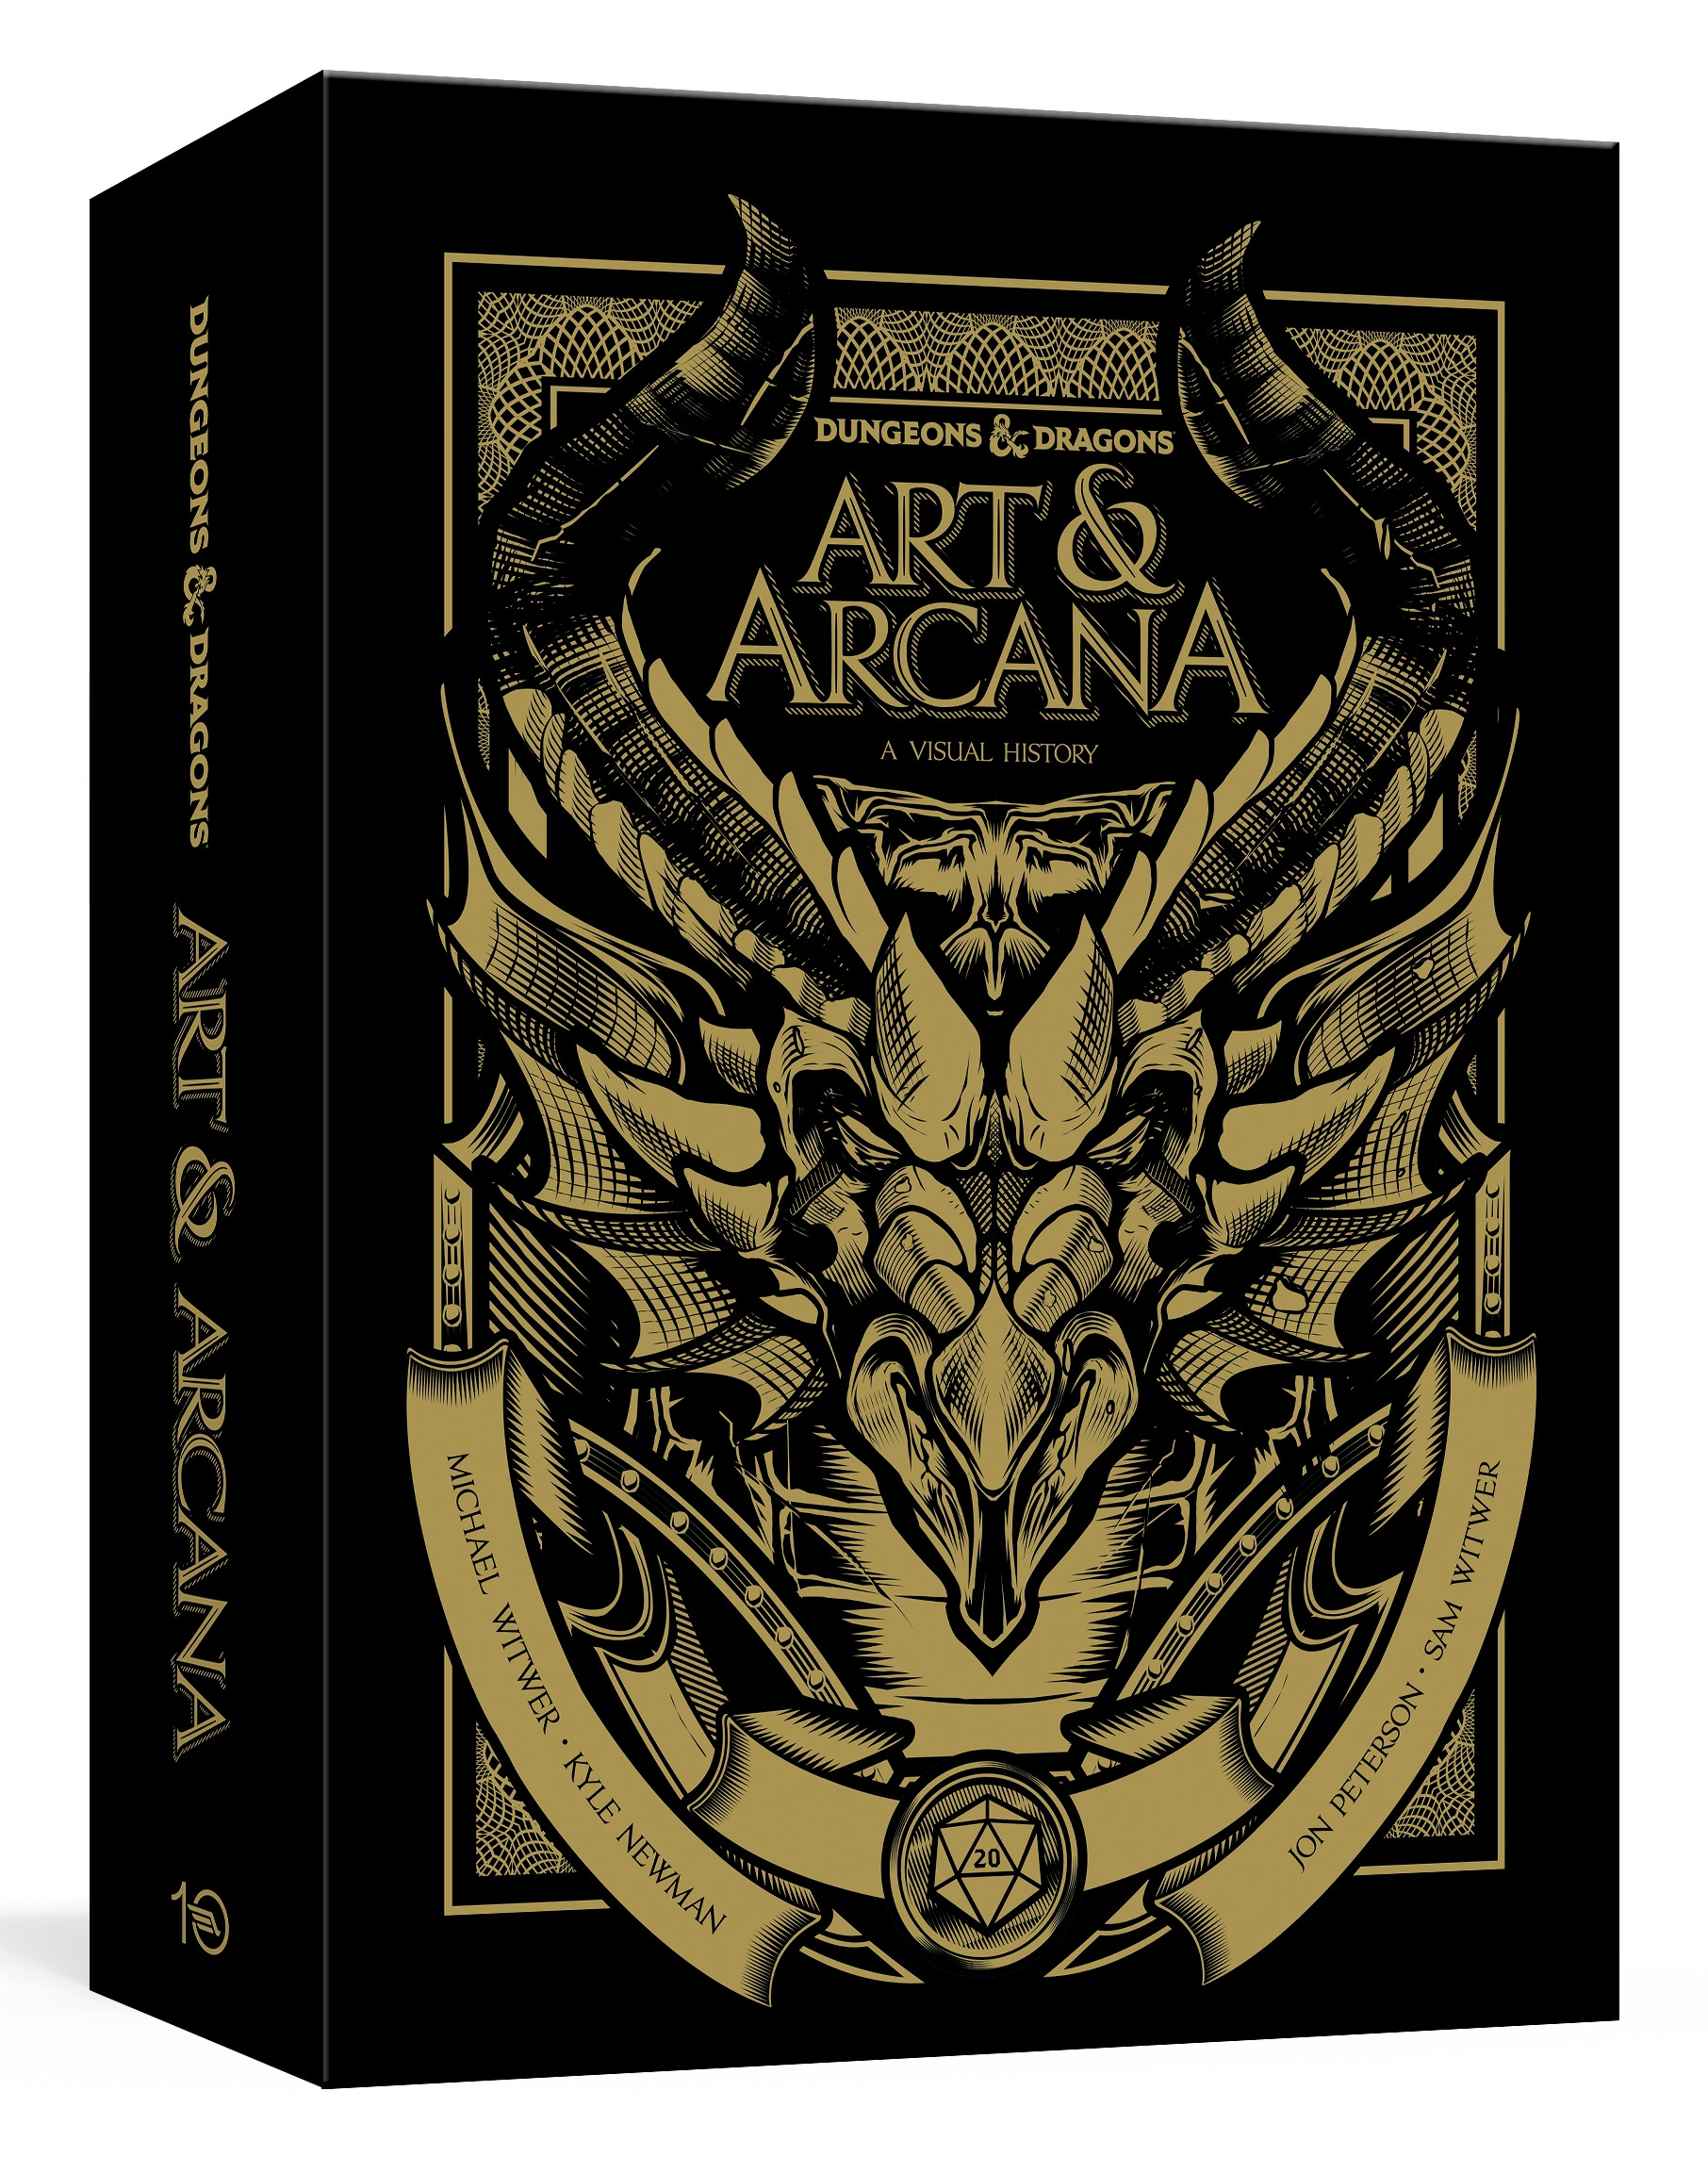 Dungeons and Dragons Art and Arcana [special Edition, Boxed Book & Ephemera]: A Visual History